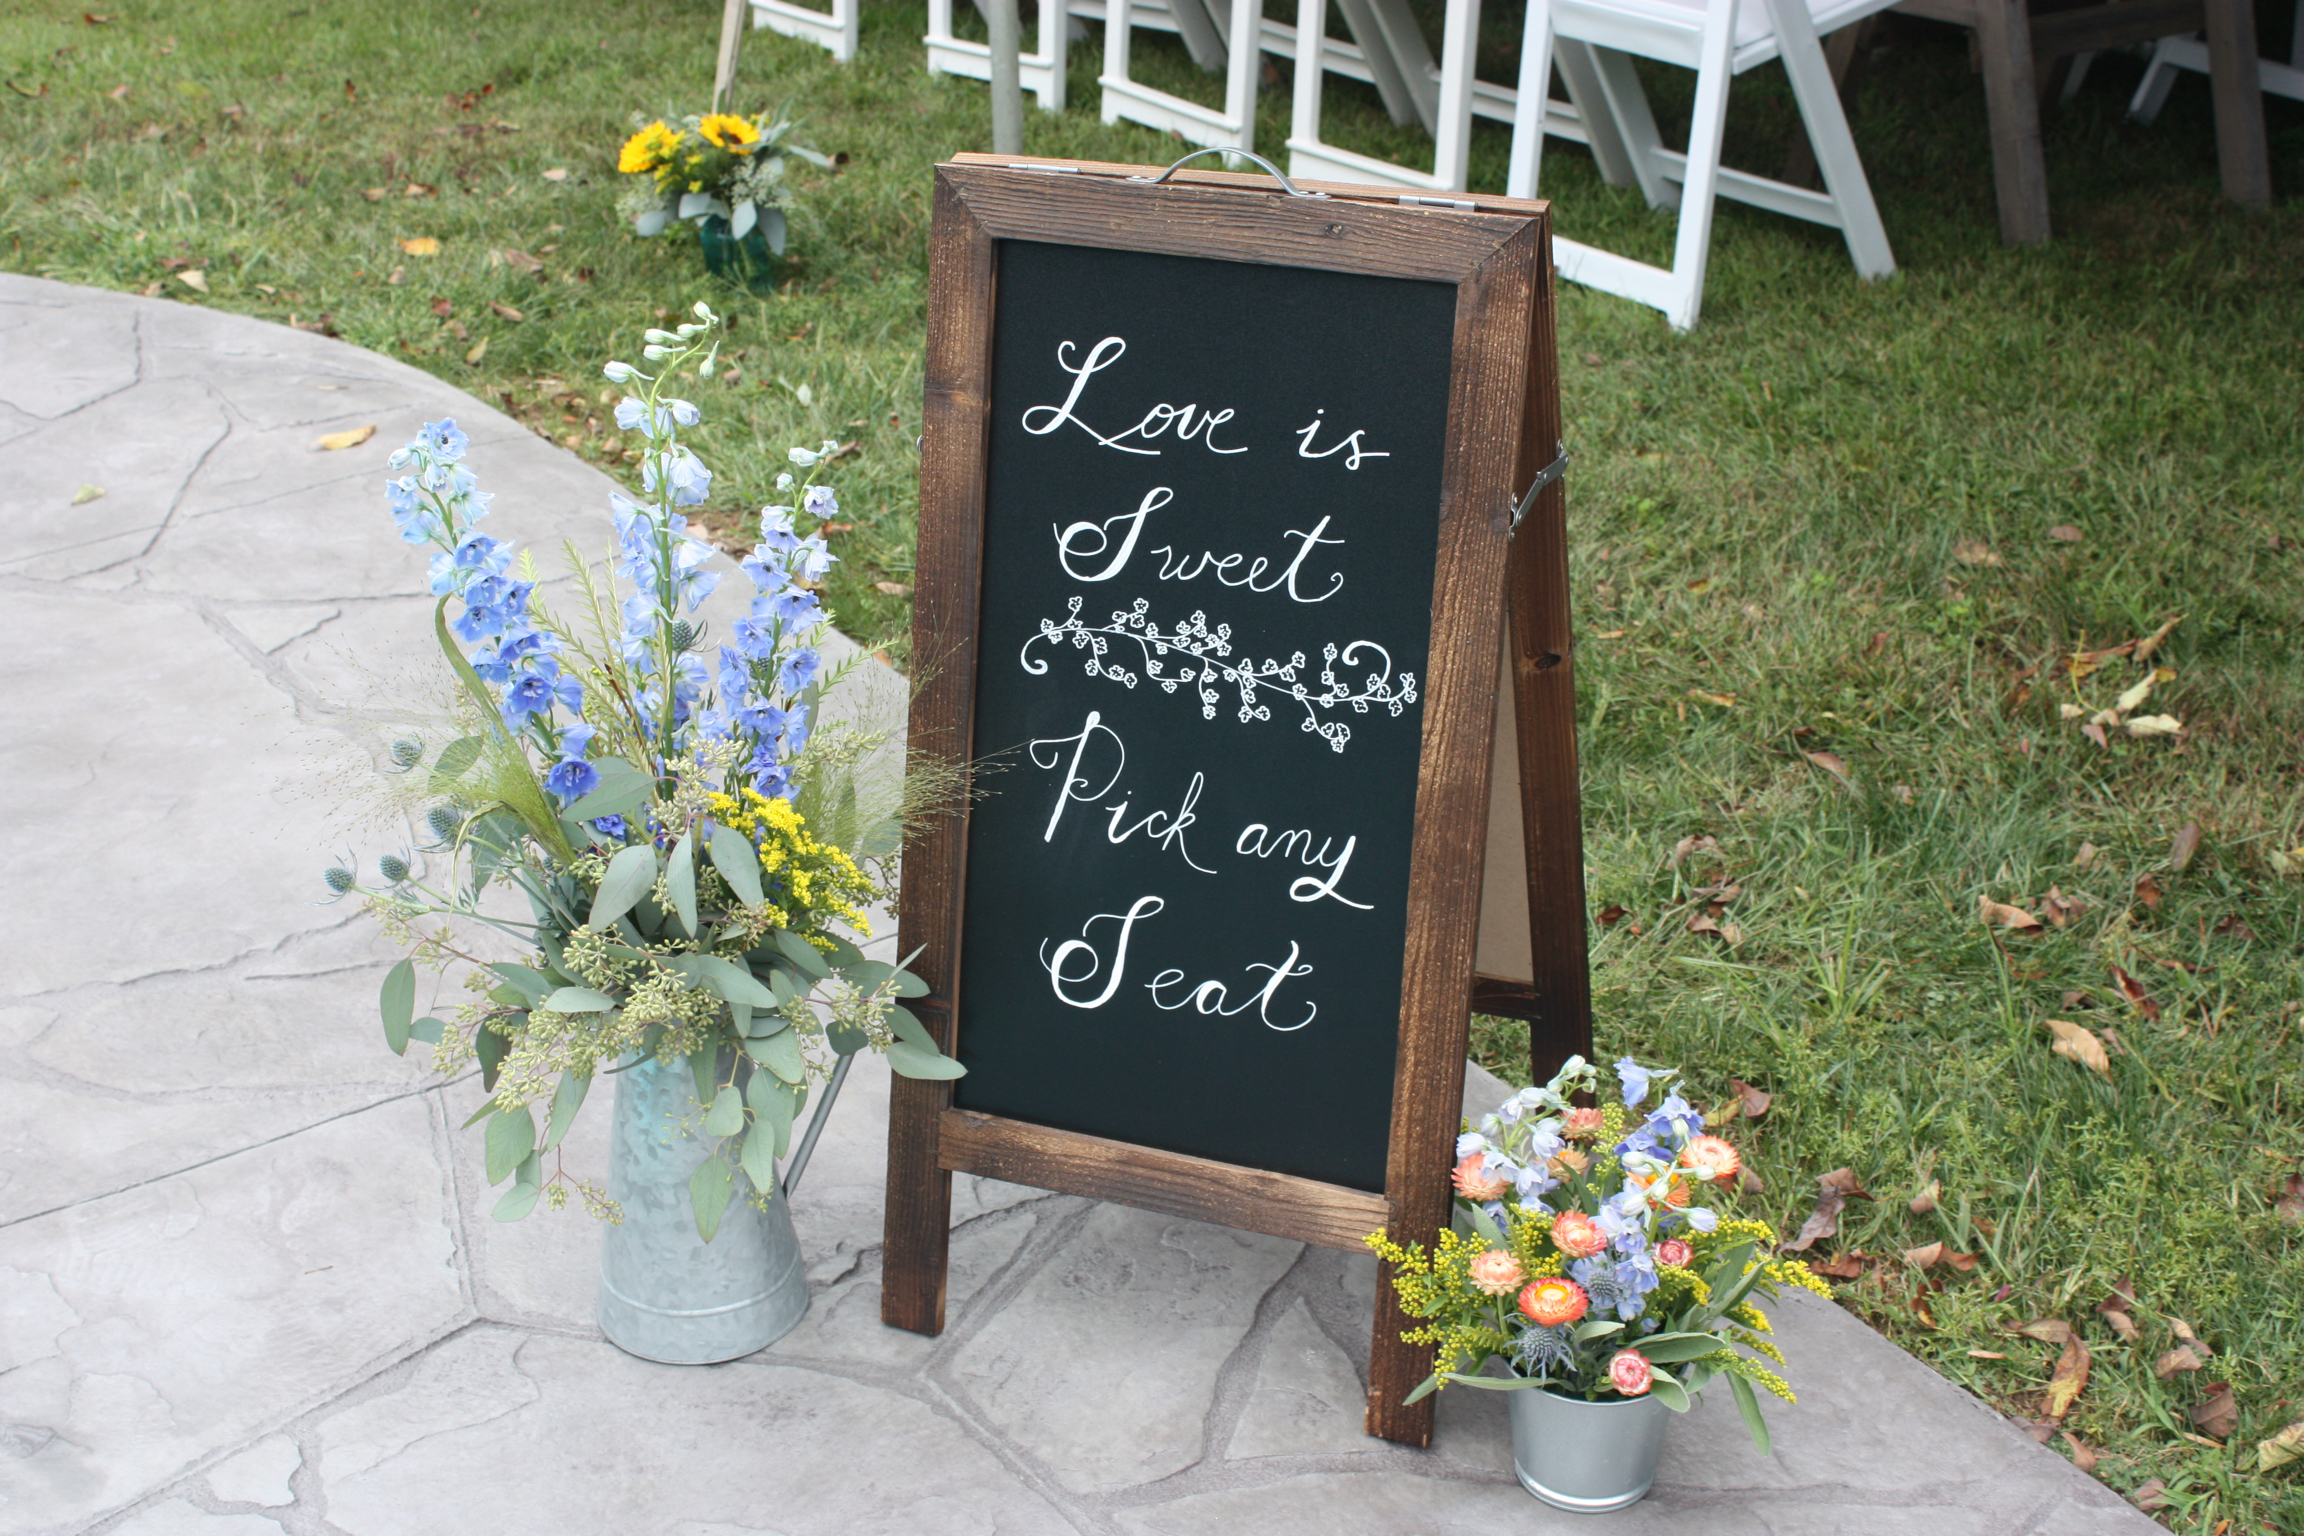 Love is sweet pick any seat sign for a outdoor tented wedding reception - Pearl Weddings & Events